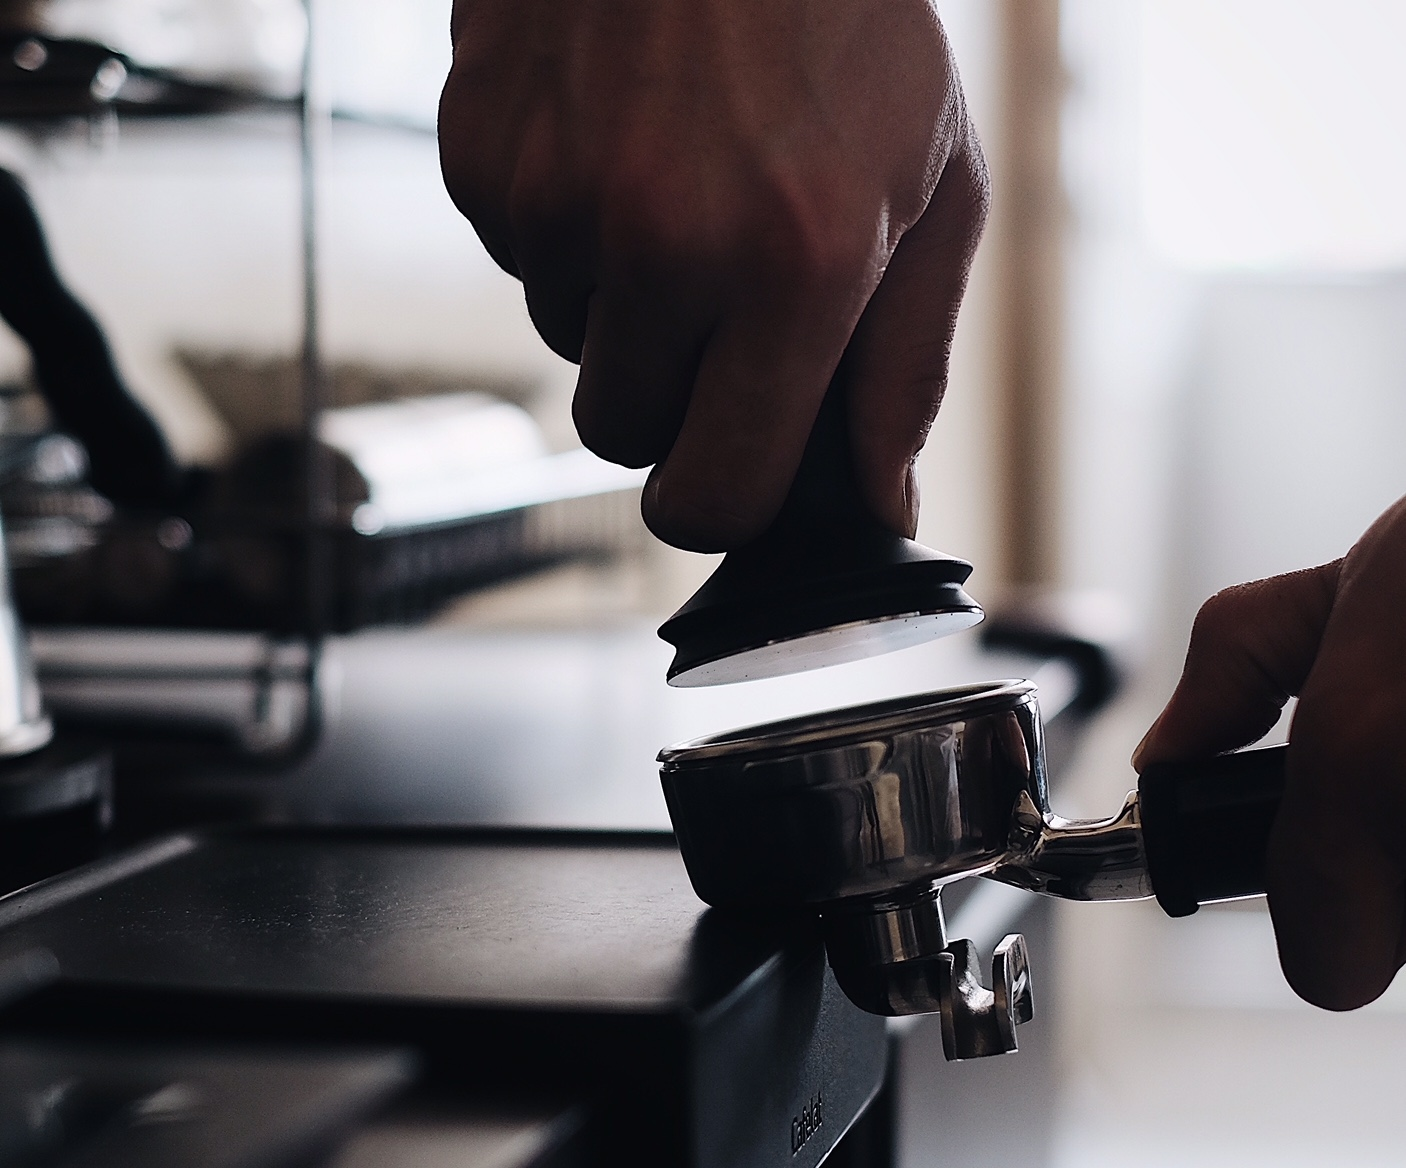 A hand holds a tamper just after using it to compact espresso grounds before pulling a shot.